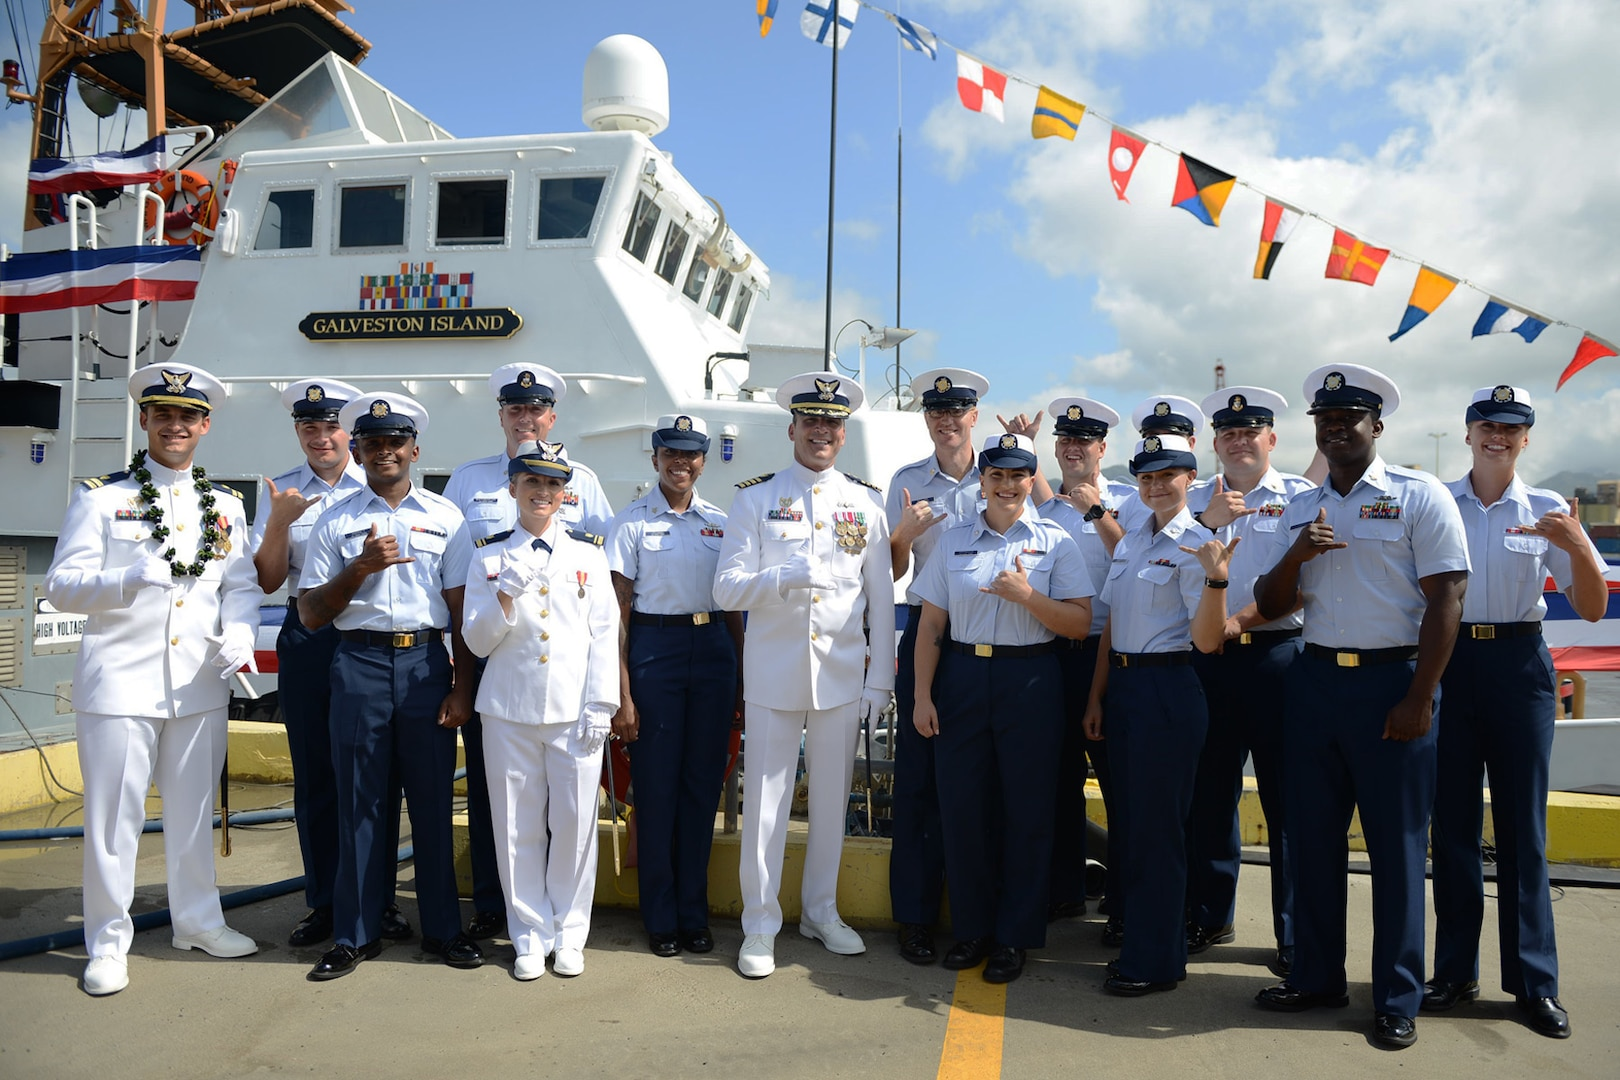 Coast Guard Cutter Galveston Island decommissioned after 26 years of service